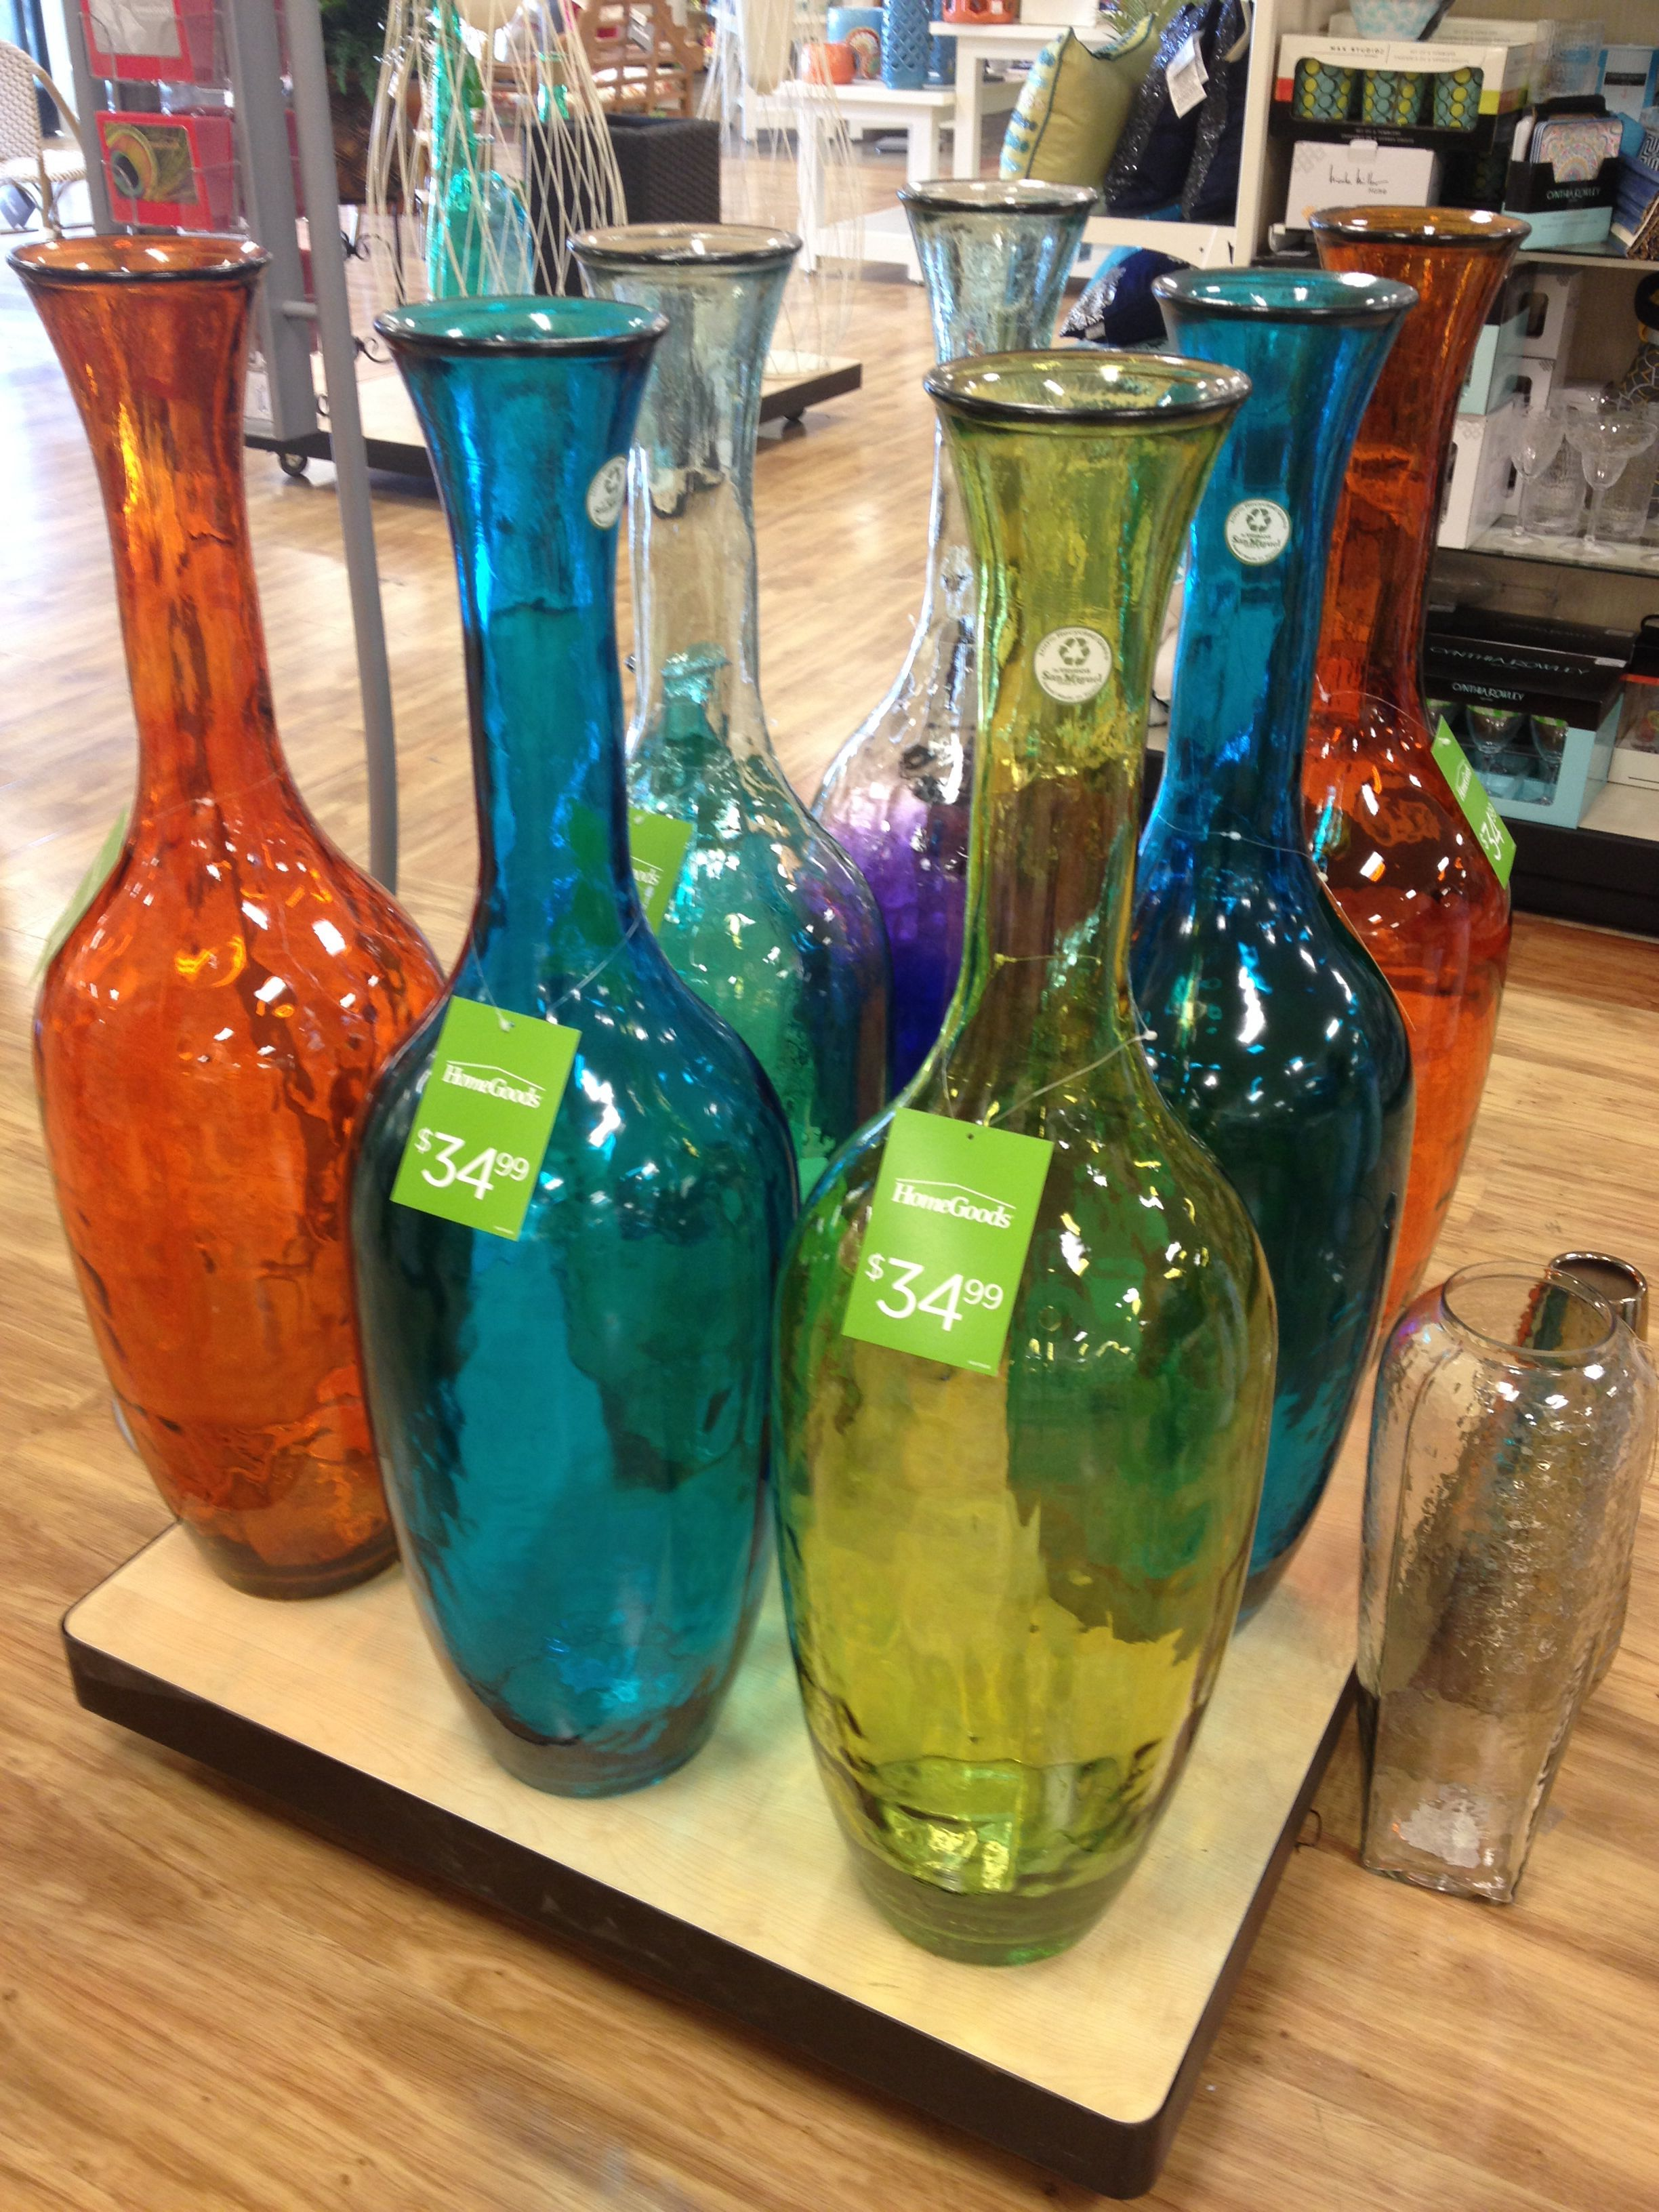 Vases At Home Goods | Jonathan Steele on home goods home decor, home goods mooresville nc, home goods cookware, home goods gifts, home goods desks, home goods bowls, home goods accessories, home goods flowers, home goods trays, home goods tablecloths, home goods chairs, home goods chests, home goods toss pillows, home goods storage, home window panels nicole miller, home goods sofas, home goods vanity stools,